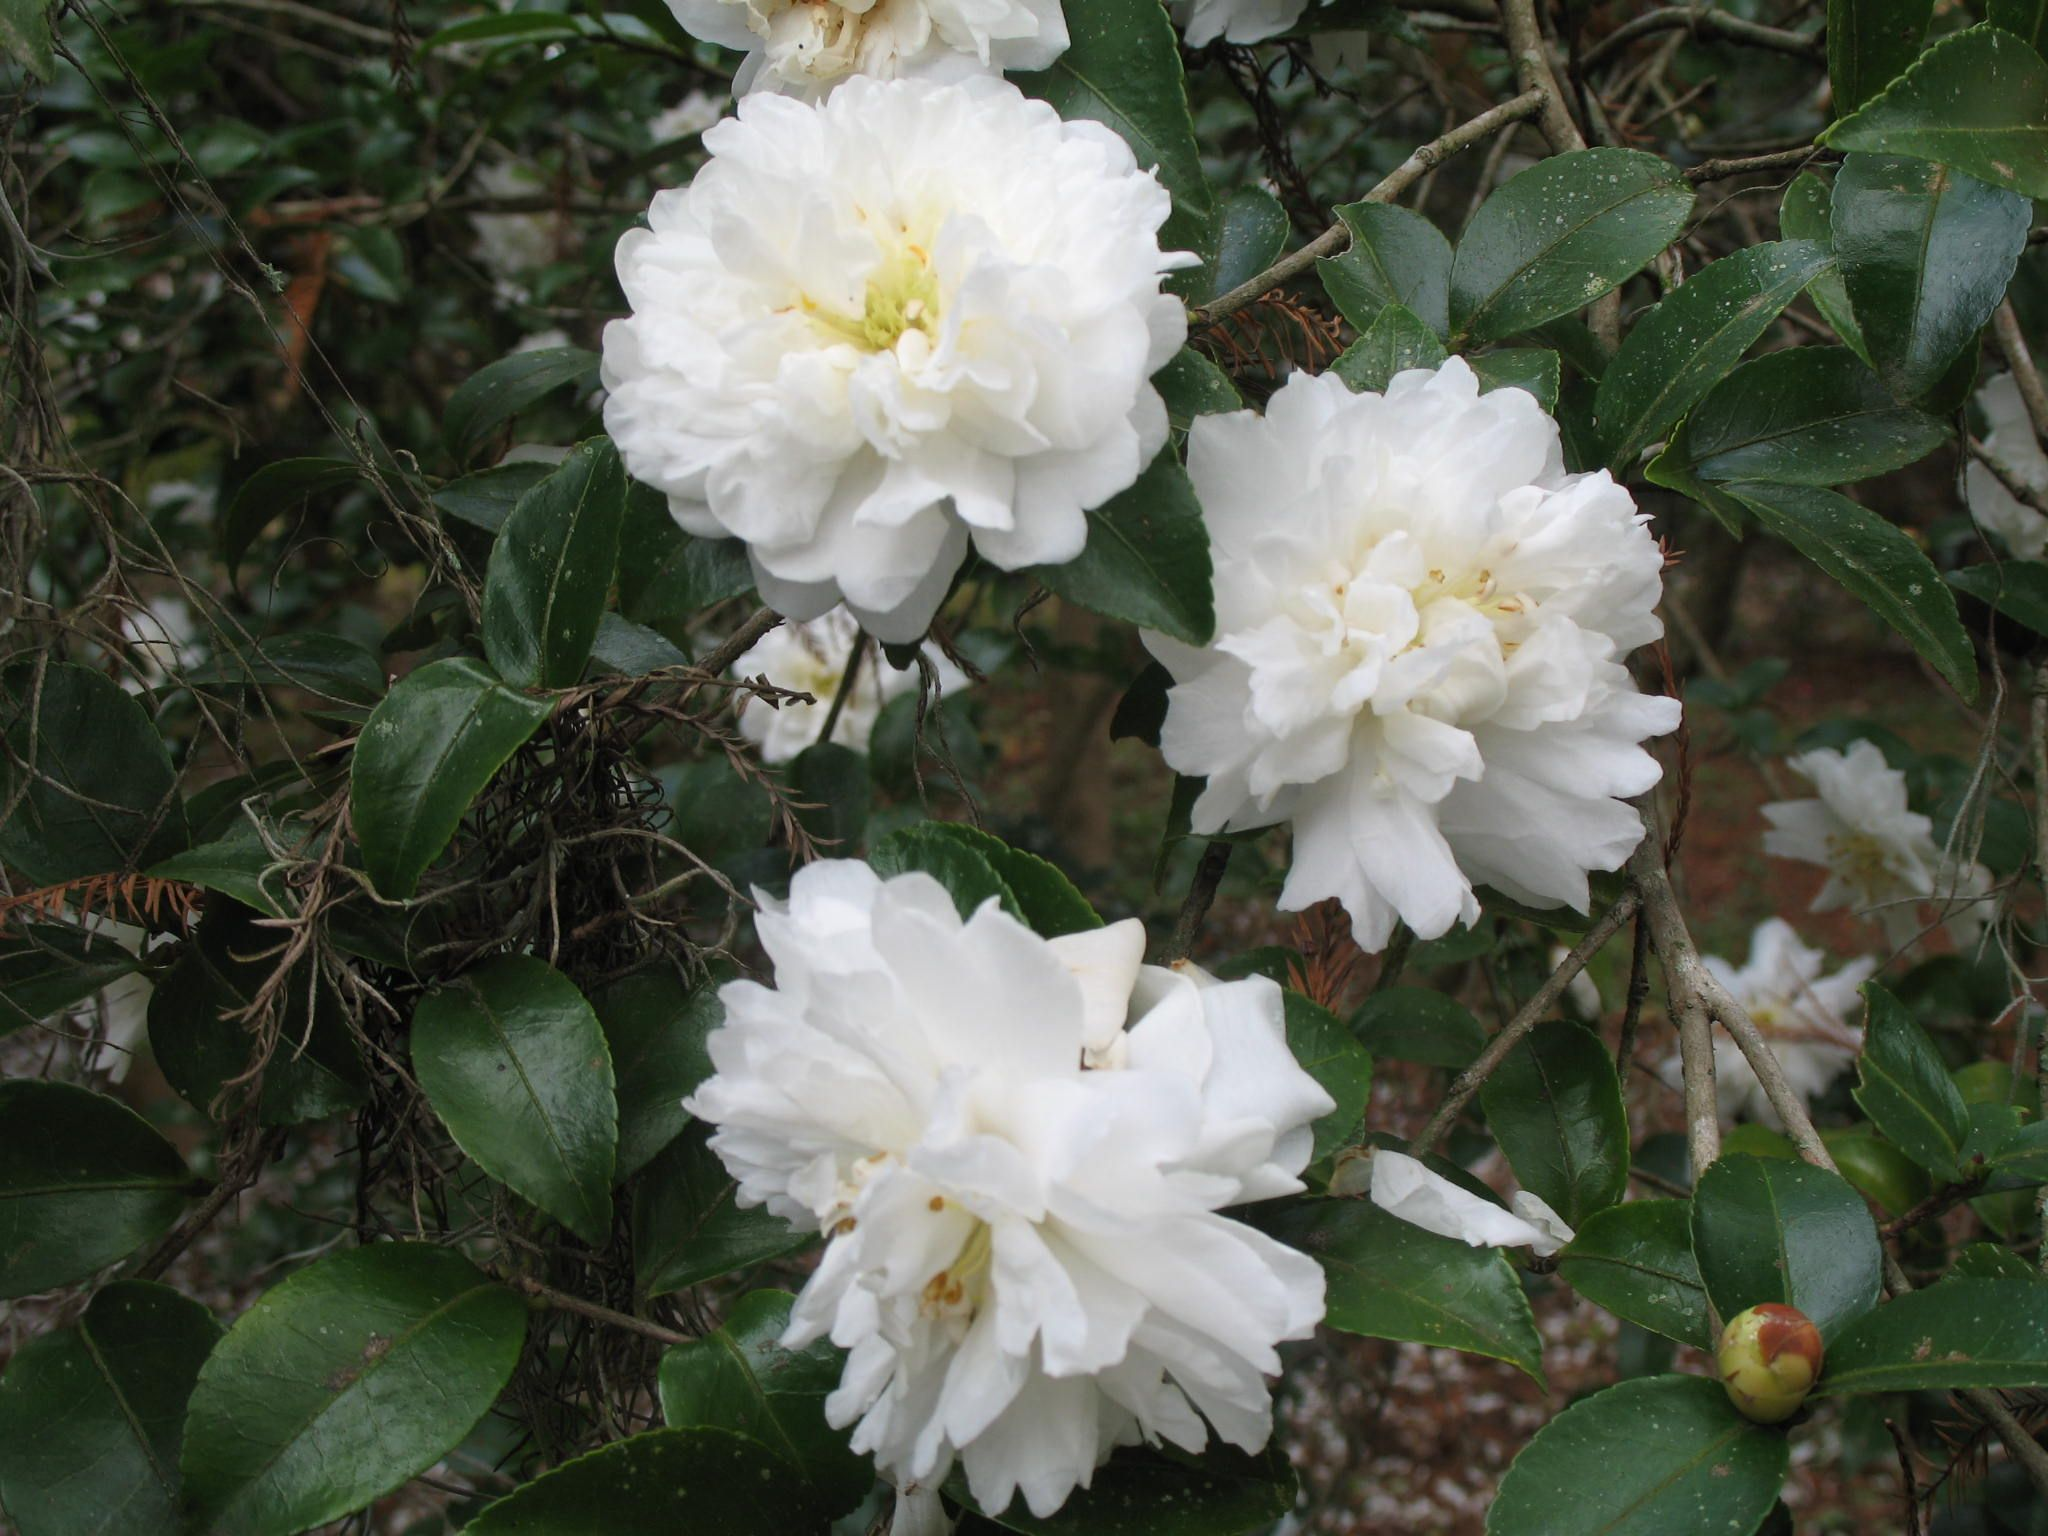 Camellia Sasanqua Snow On The Mountain Camellia Sasanqua Snow On The Mountain Small Shrub Snow Mountain Camellia White Camellia